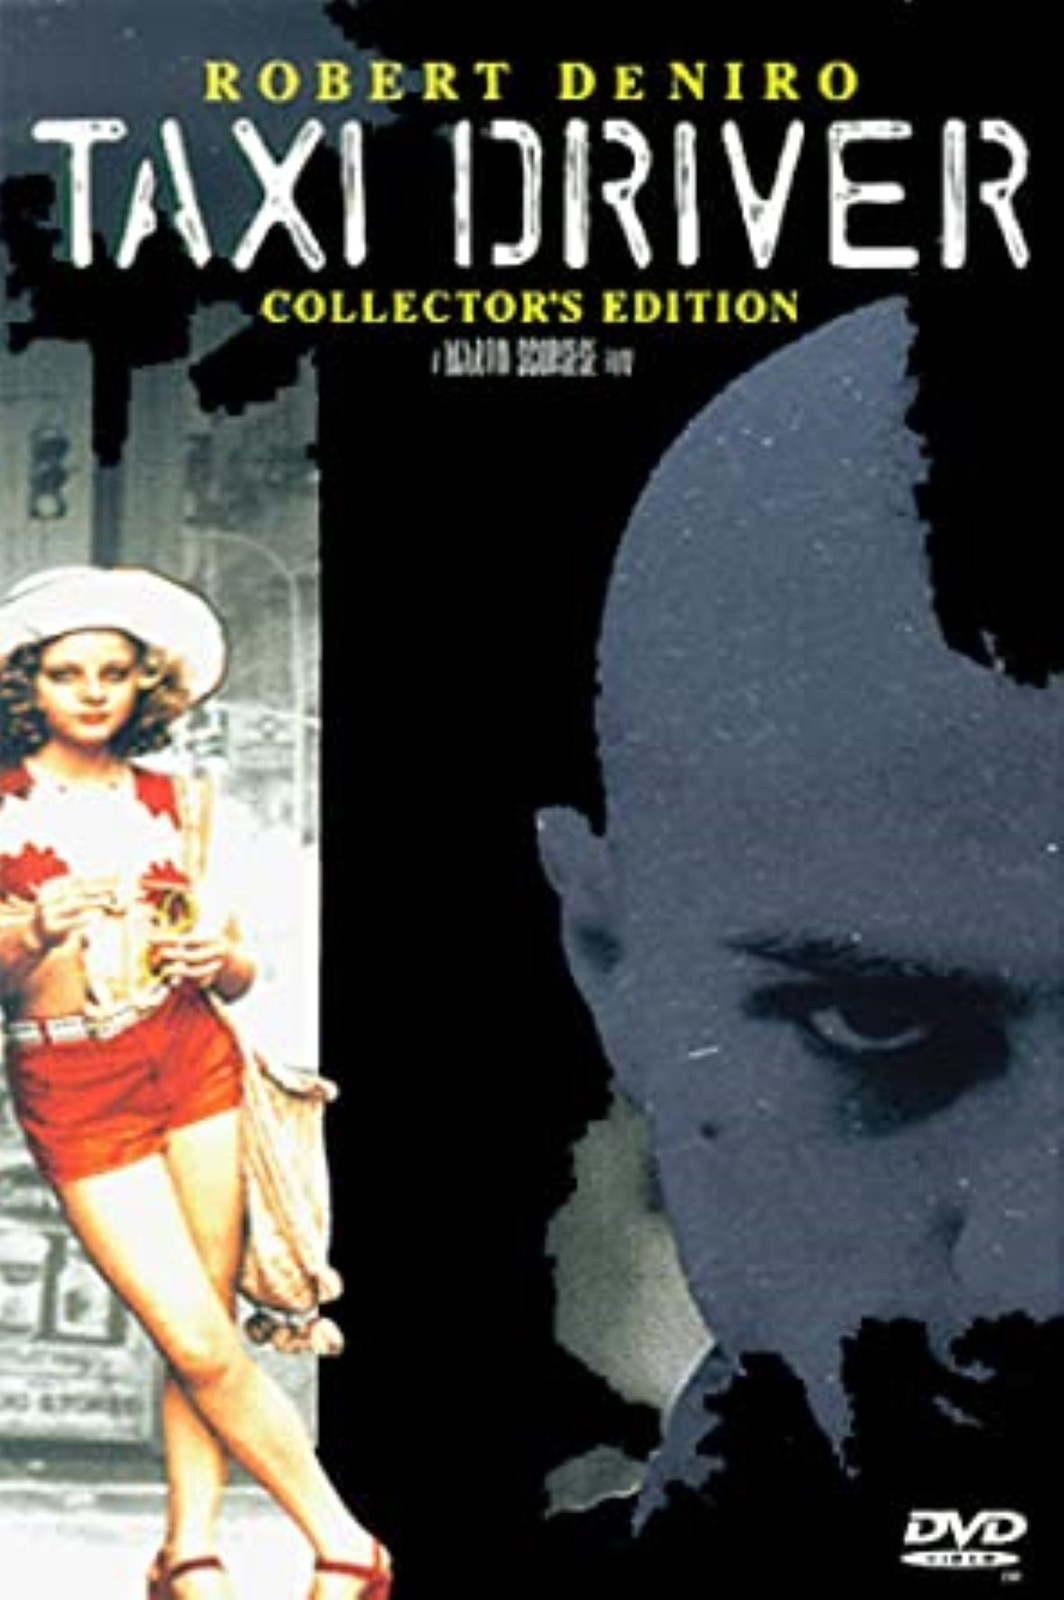 Taxi Driver (Collector's Edition) Dvd